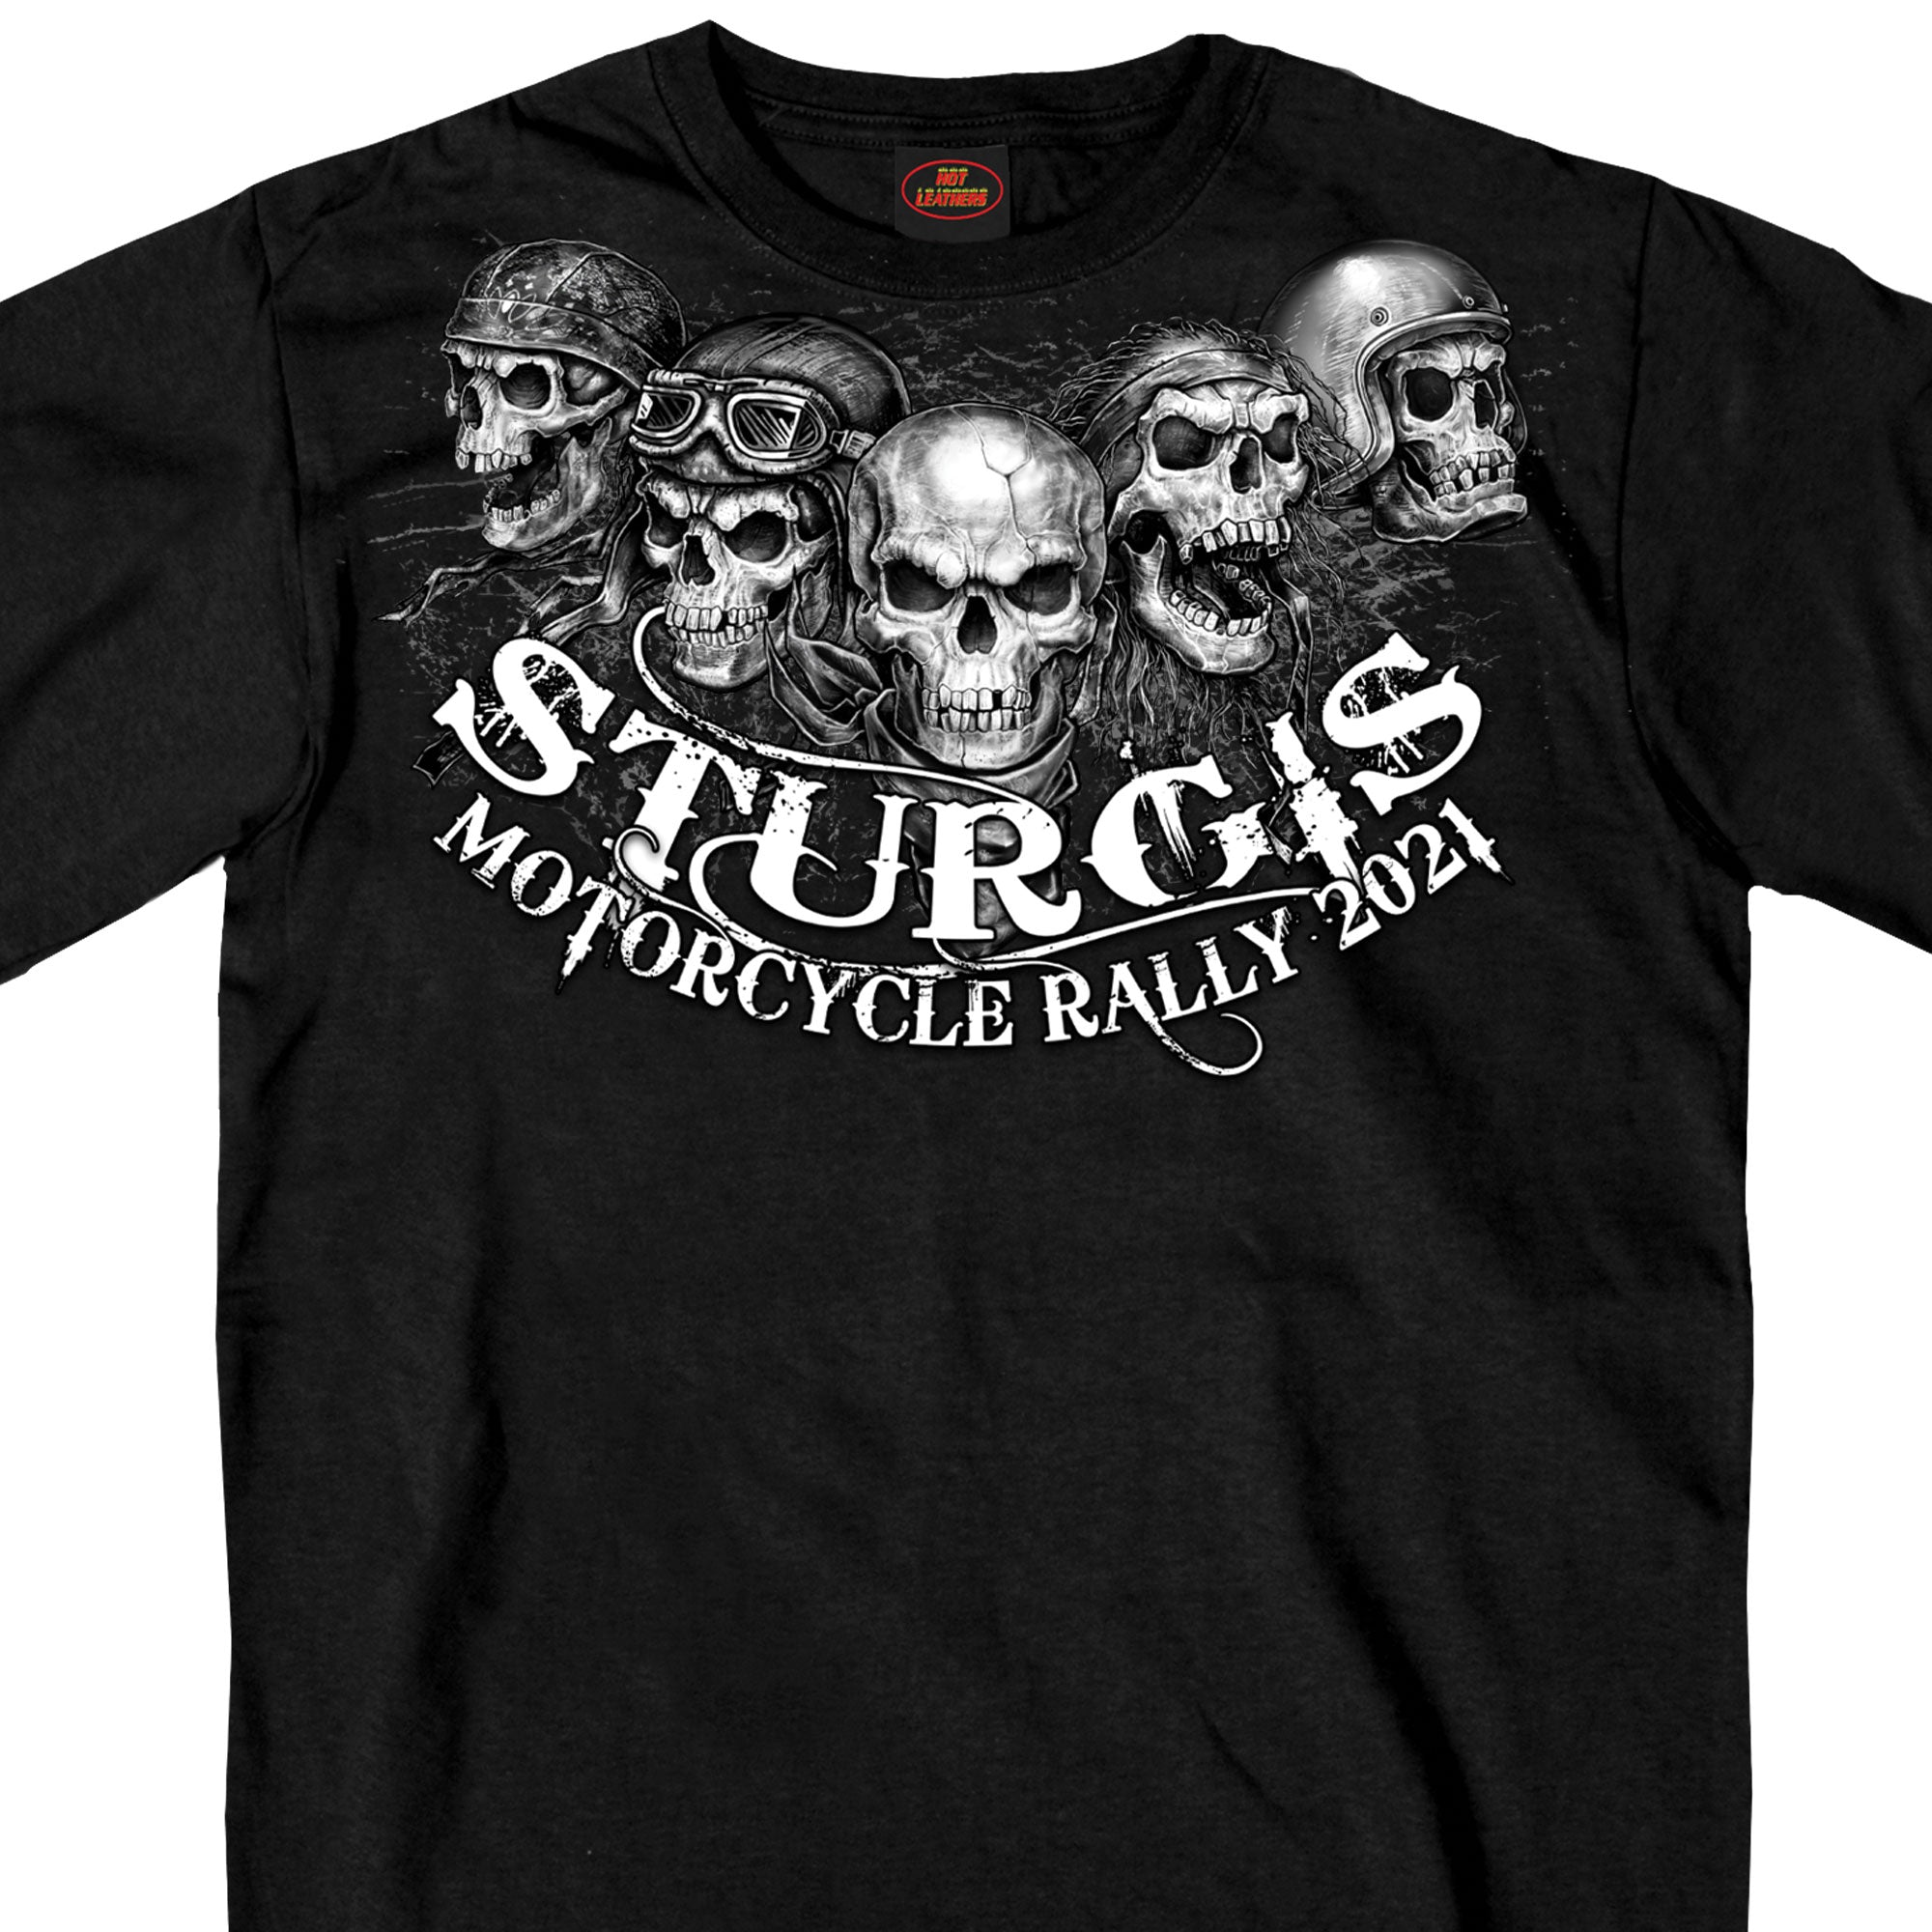 Sturgis 2021 Motorcycle Rally Five Skulls T shirt